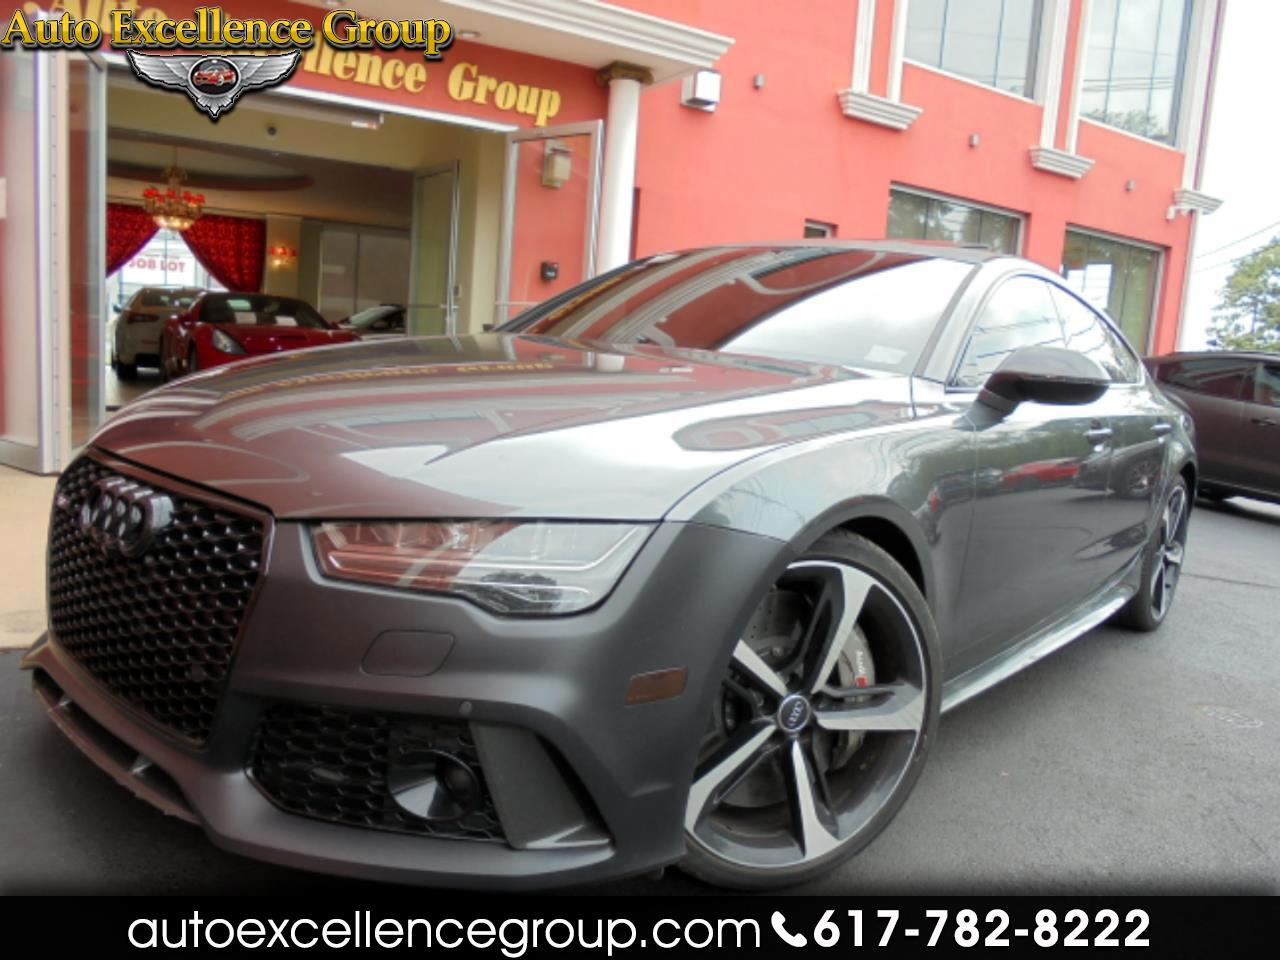 used cars for sale boston ma 01906 auto excellence group sale boston ma 01906 auto excellence group